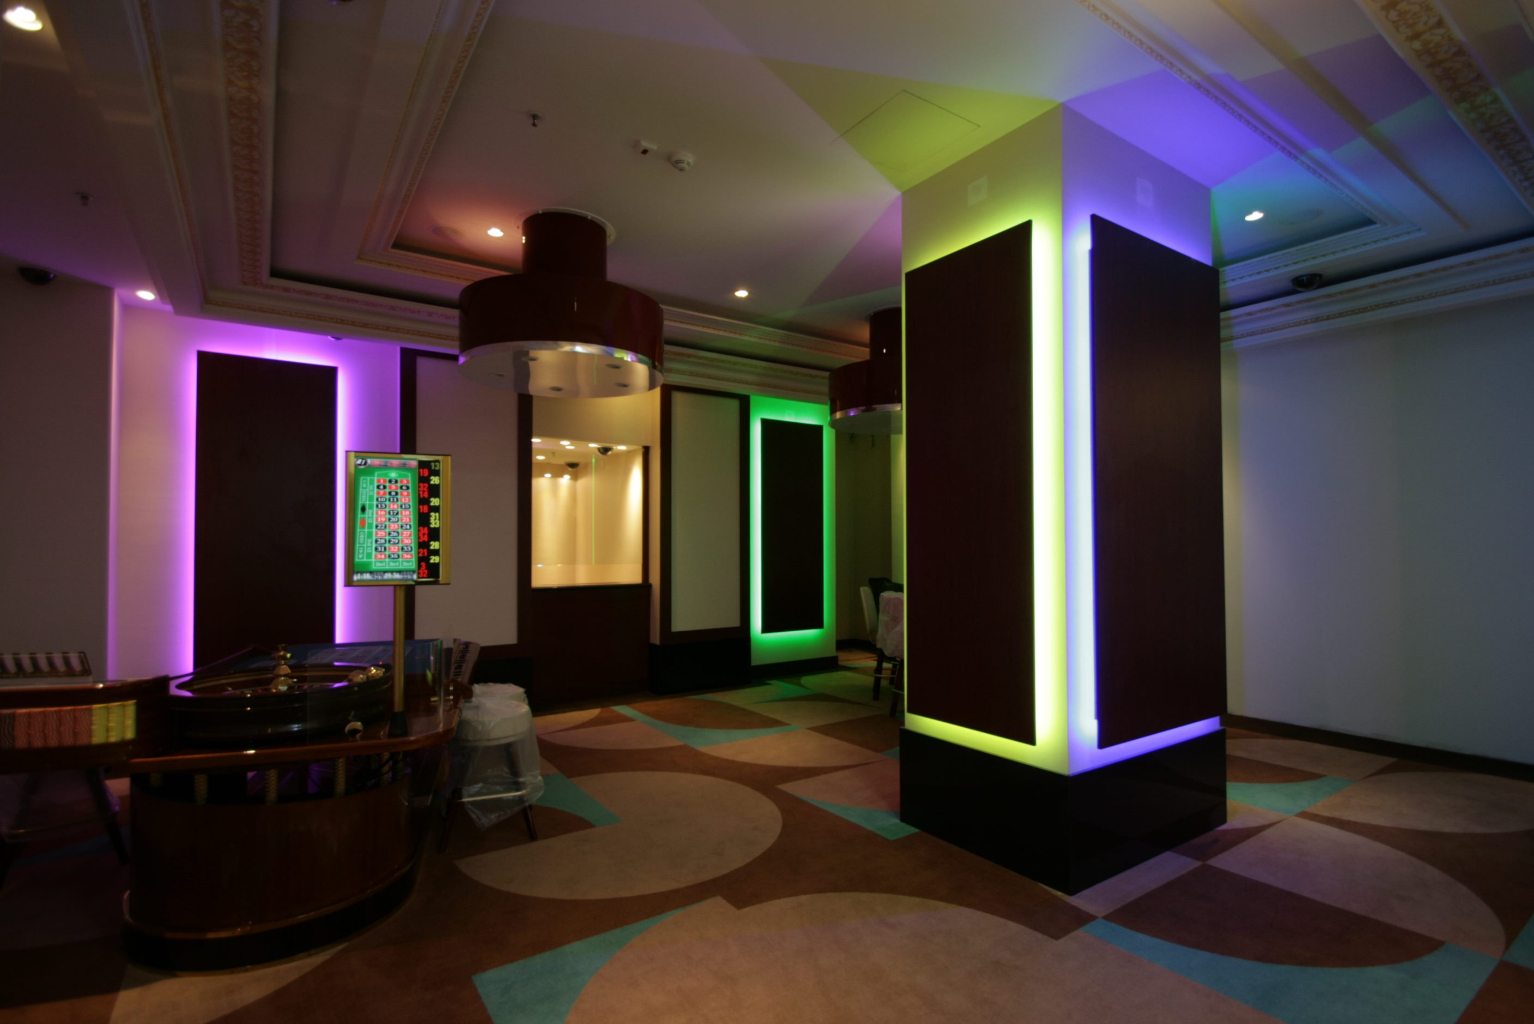 Grand Casino Marriott Bucuresti Bucharest placari pereti rame receptii usi bar bufet218